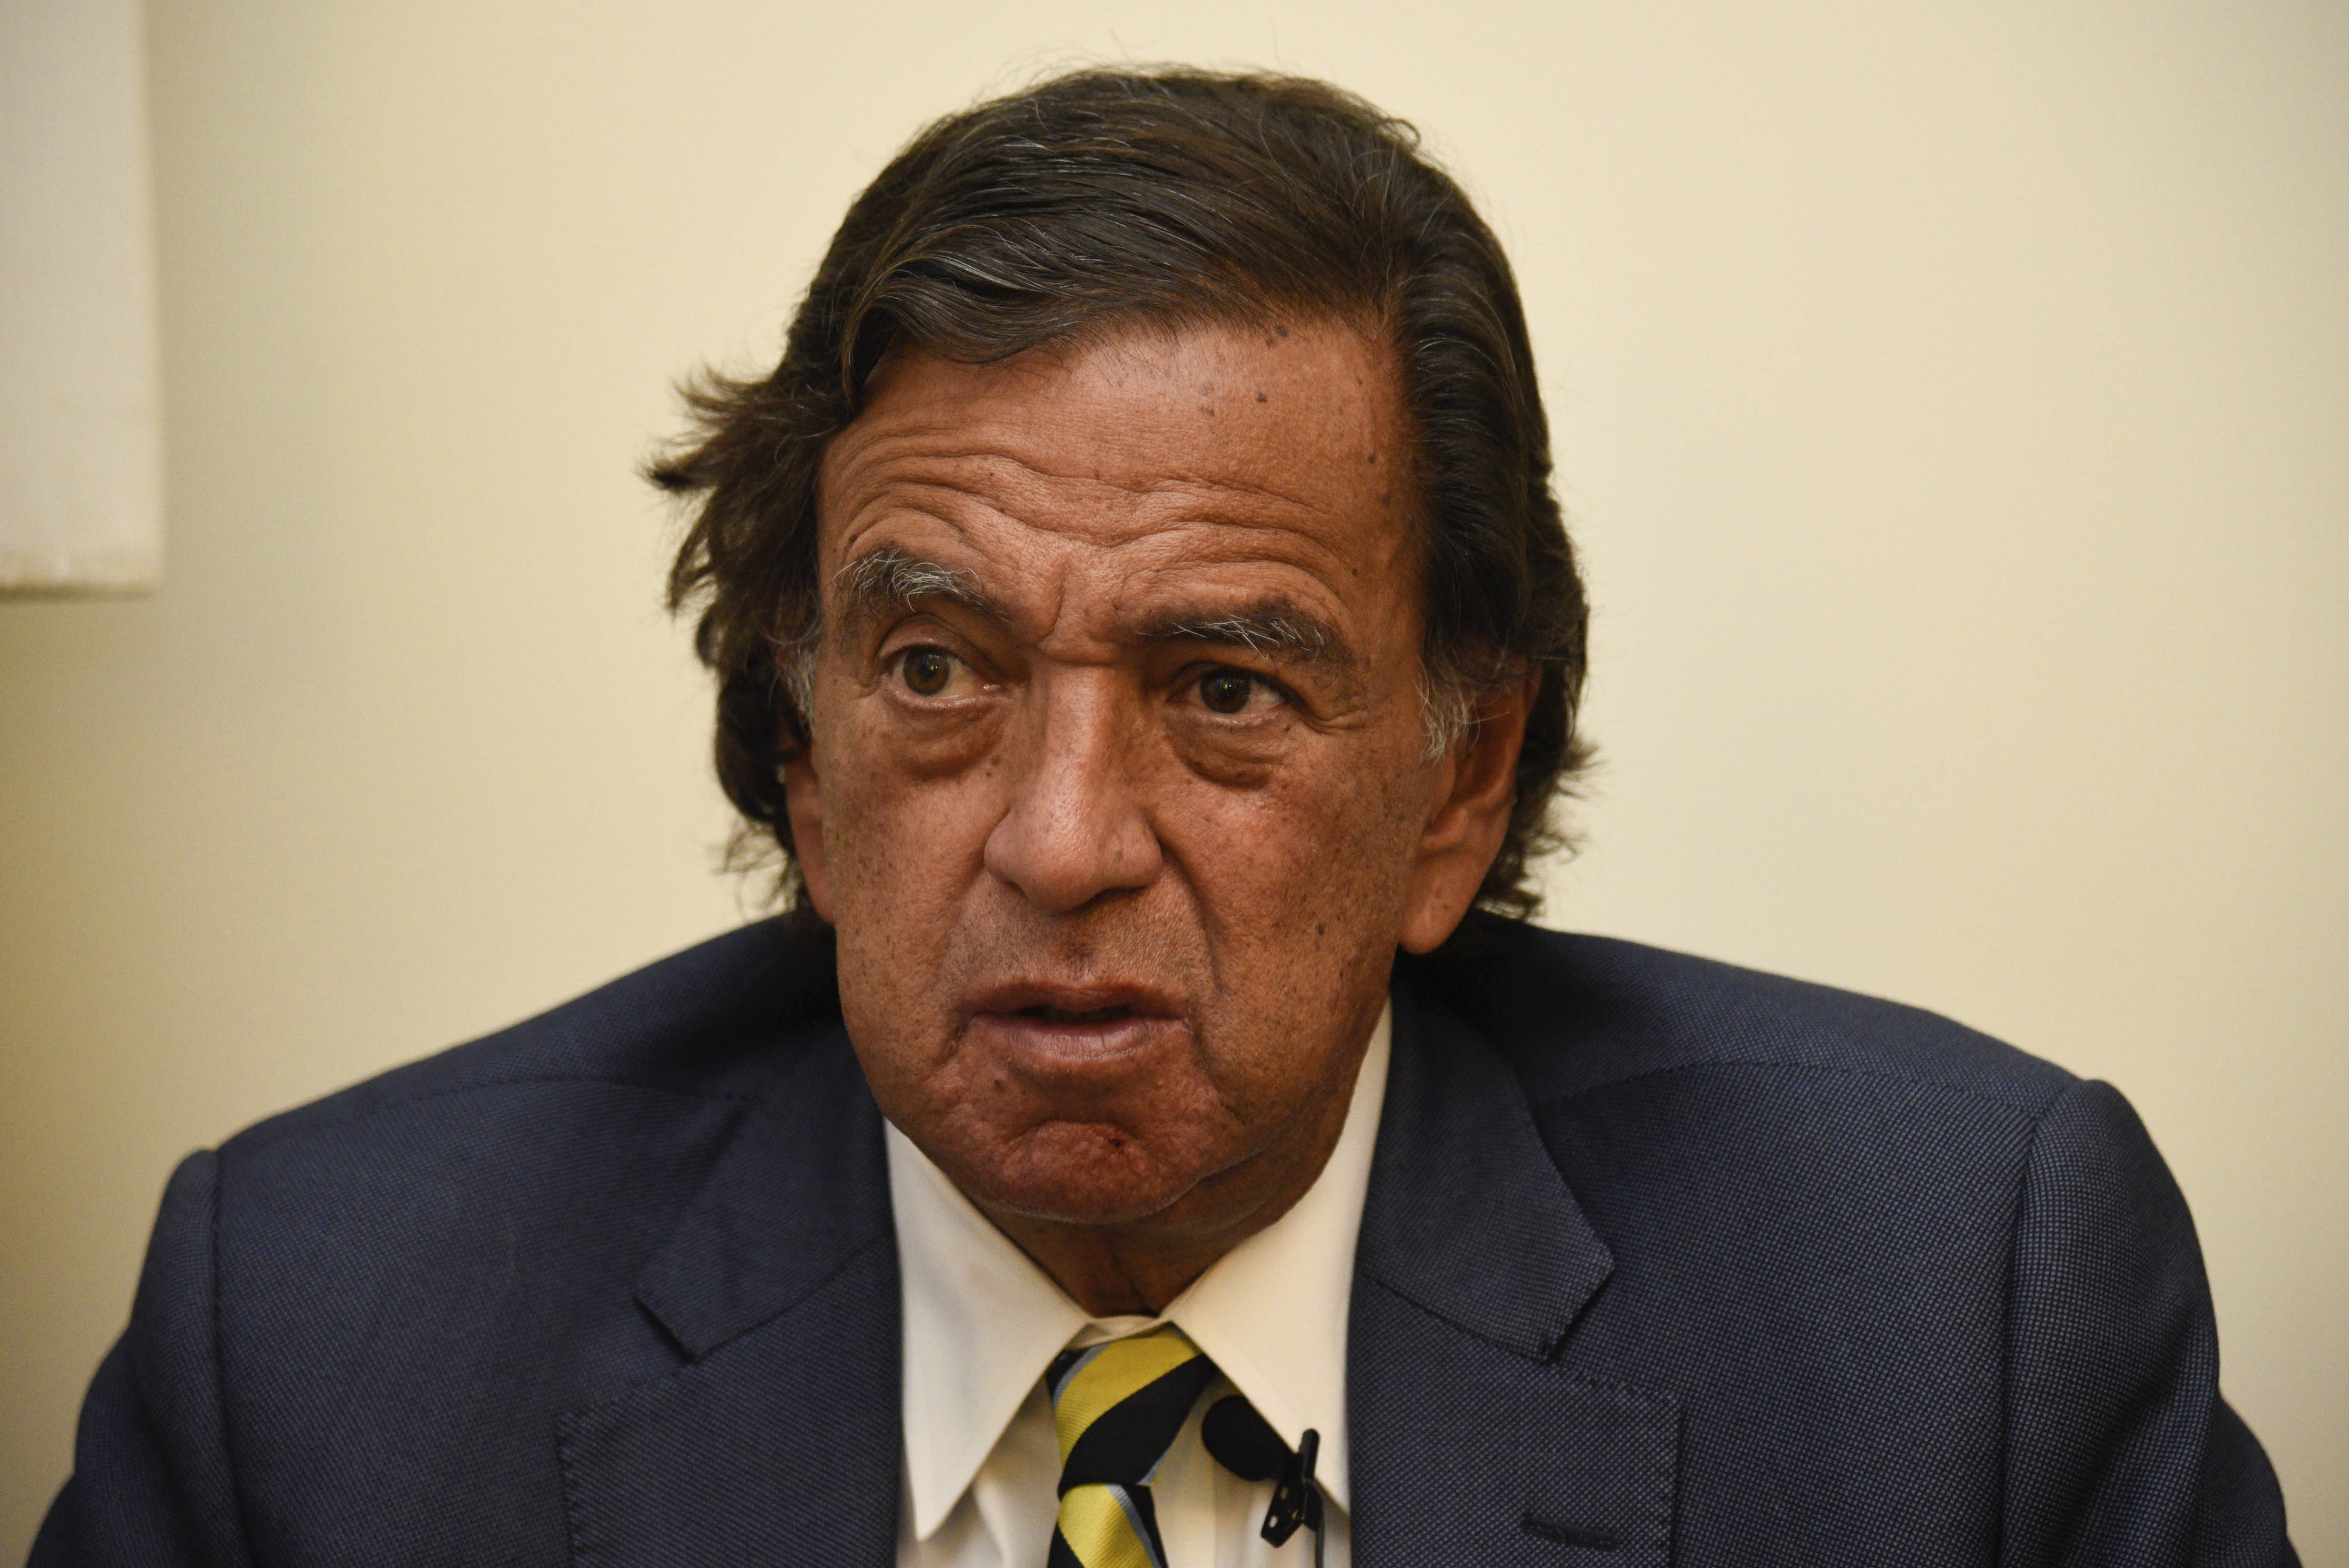 FILE - In this Jan. 24, 2018 file photo, former New Mexico Gov. Bill Richardson gives an interview in Yangon, Myanmar. Richardson will travel the week of July 13, 2020, to Venezuela to urge President Nicolás Maduro to free several jailed Americans as a goodwill gesture aimed at easing tensions with the U.S., according to The Richardson Center in an annoucement on Monday, July 13, 2020. (AP Photo/Thet Htoo, File)